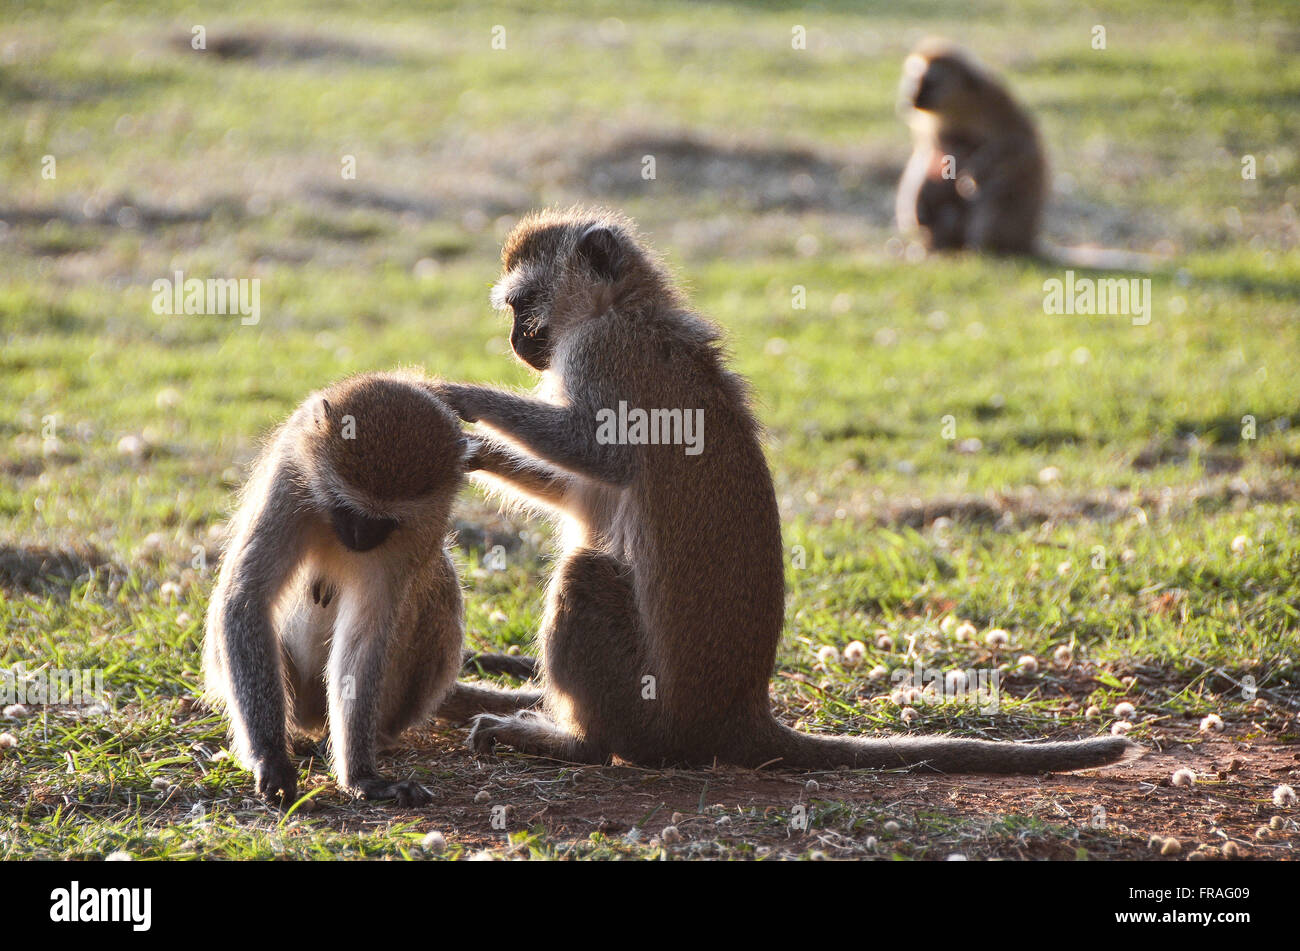 Vervet monkeys - also called old world monkey - in Amboseli National Park - Stock Image